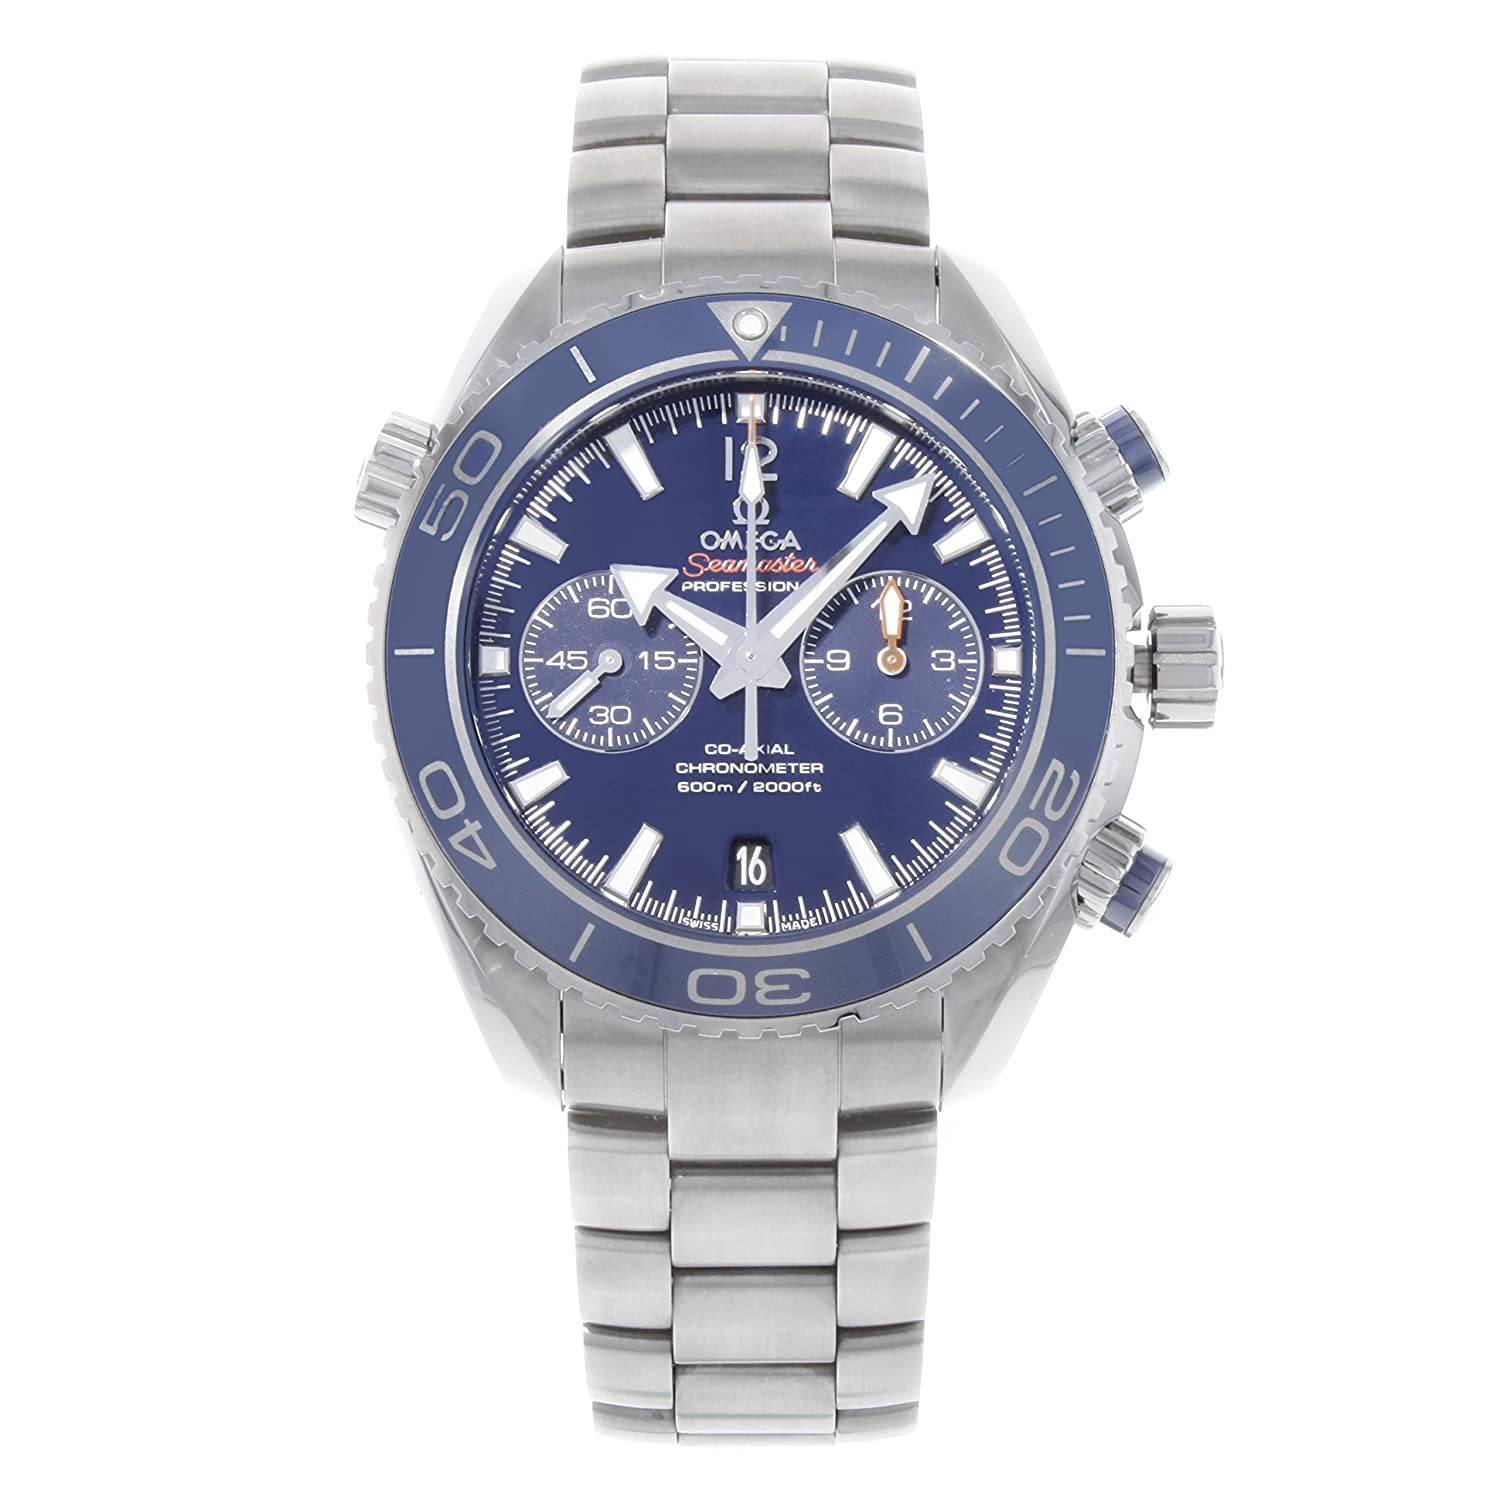 Omega Seamaster Planet Ocean Chronograph Mens Watch 232.90.46.51.03.001